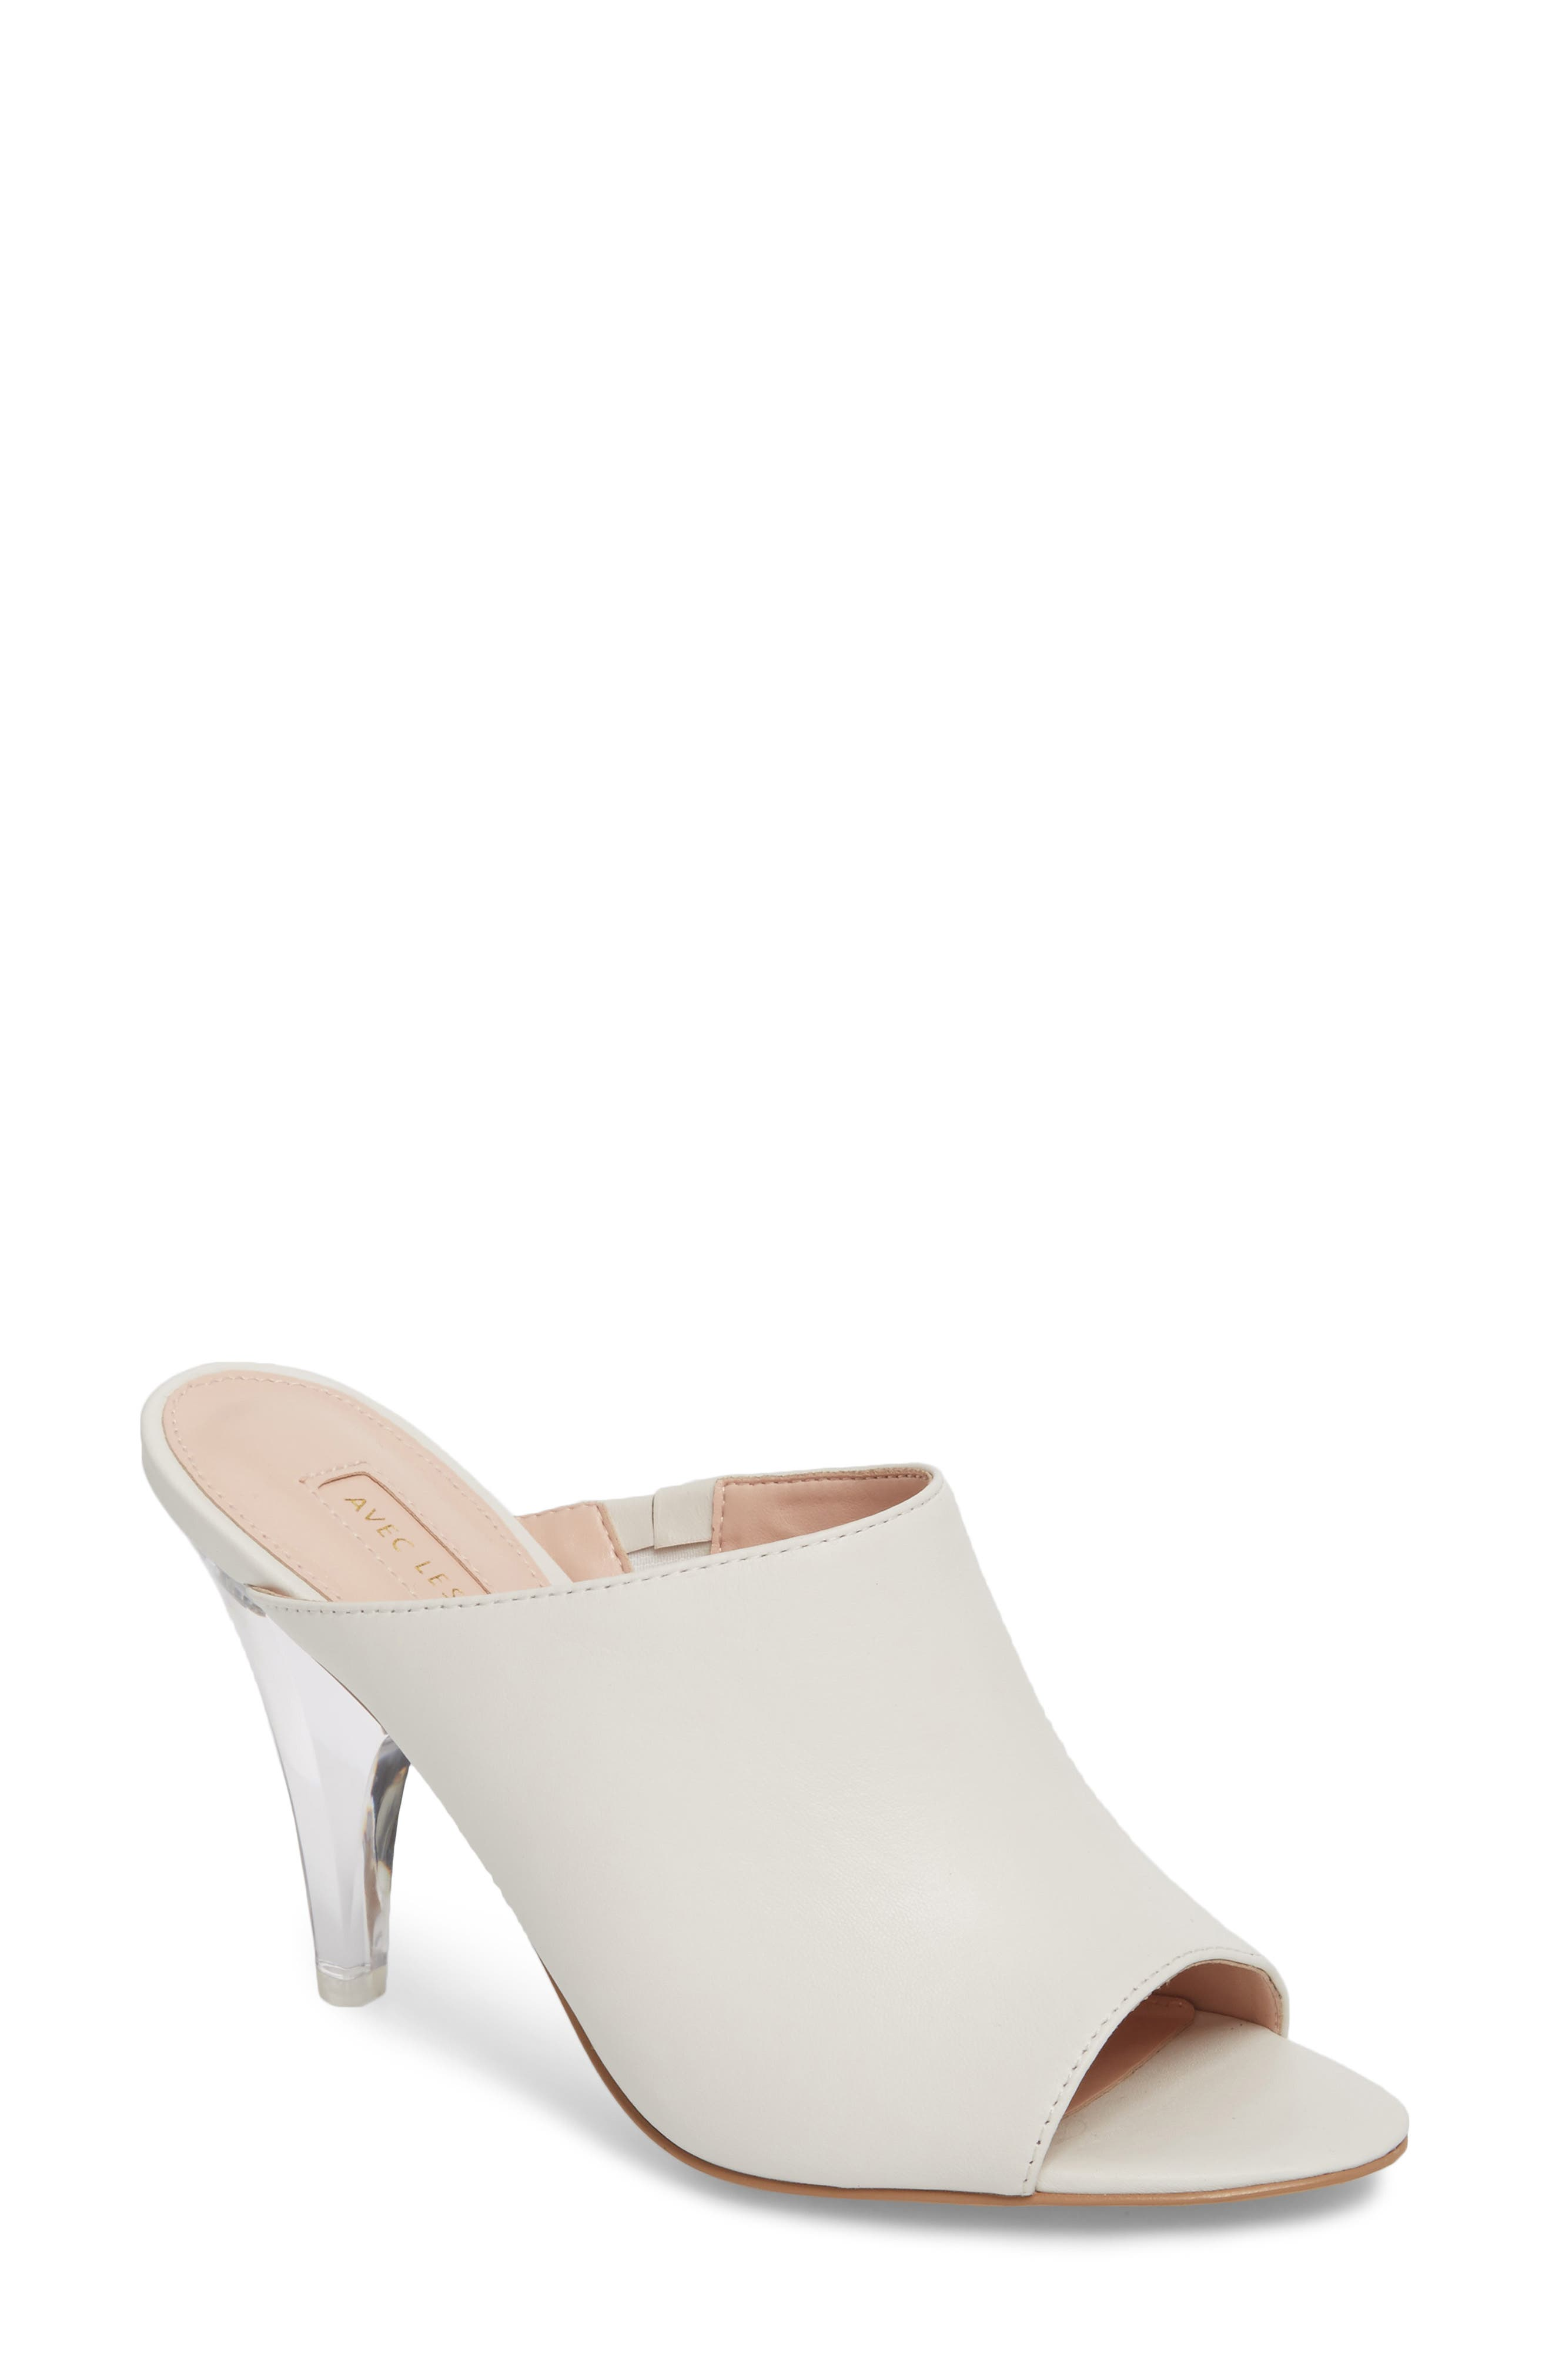 Jazz Off Sandal,                             Main thumbnail 1, color,                             Off White Leather